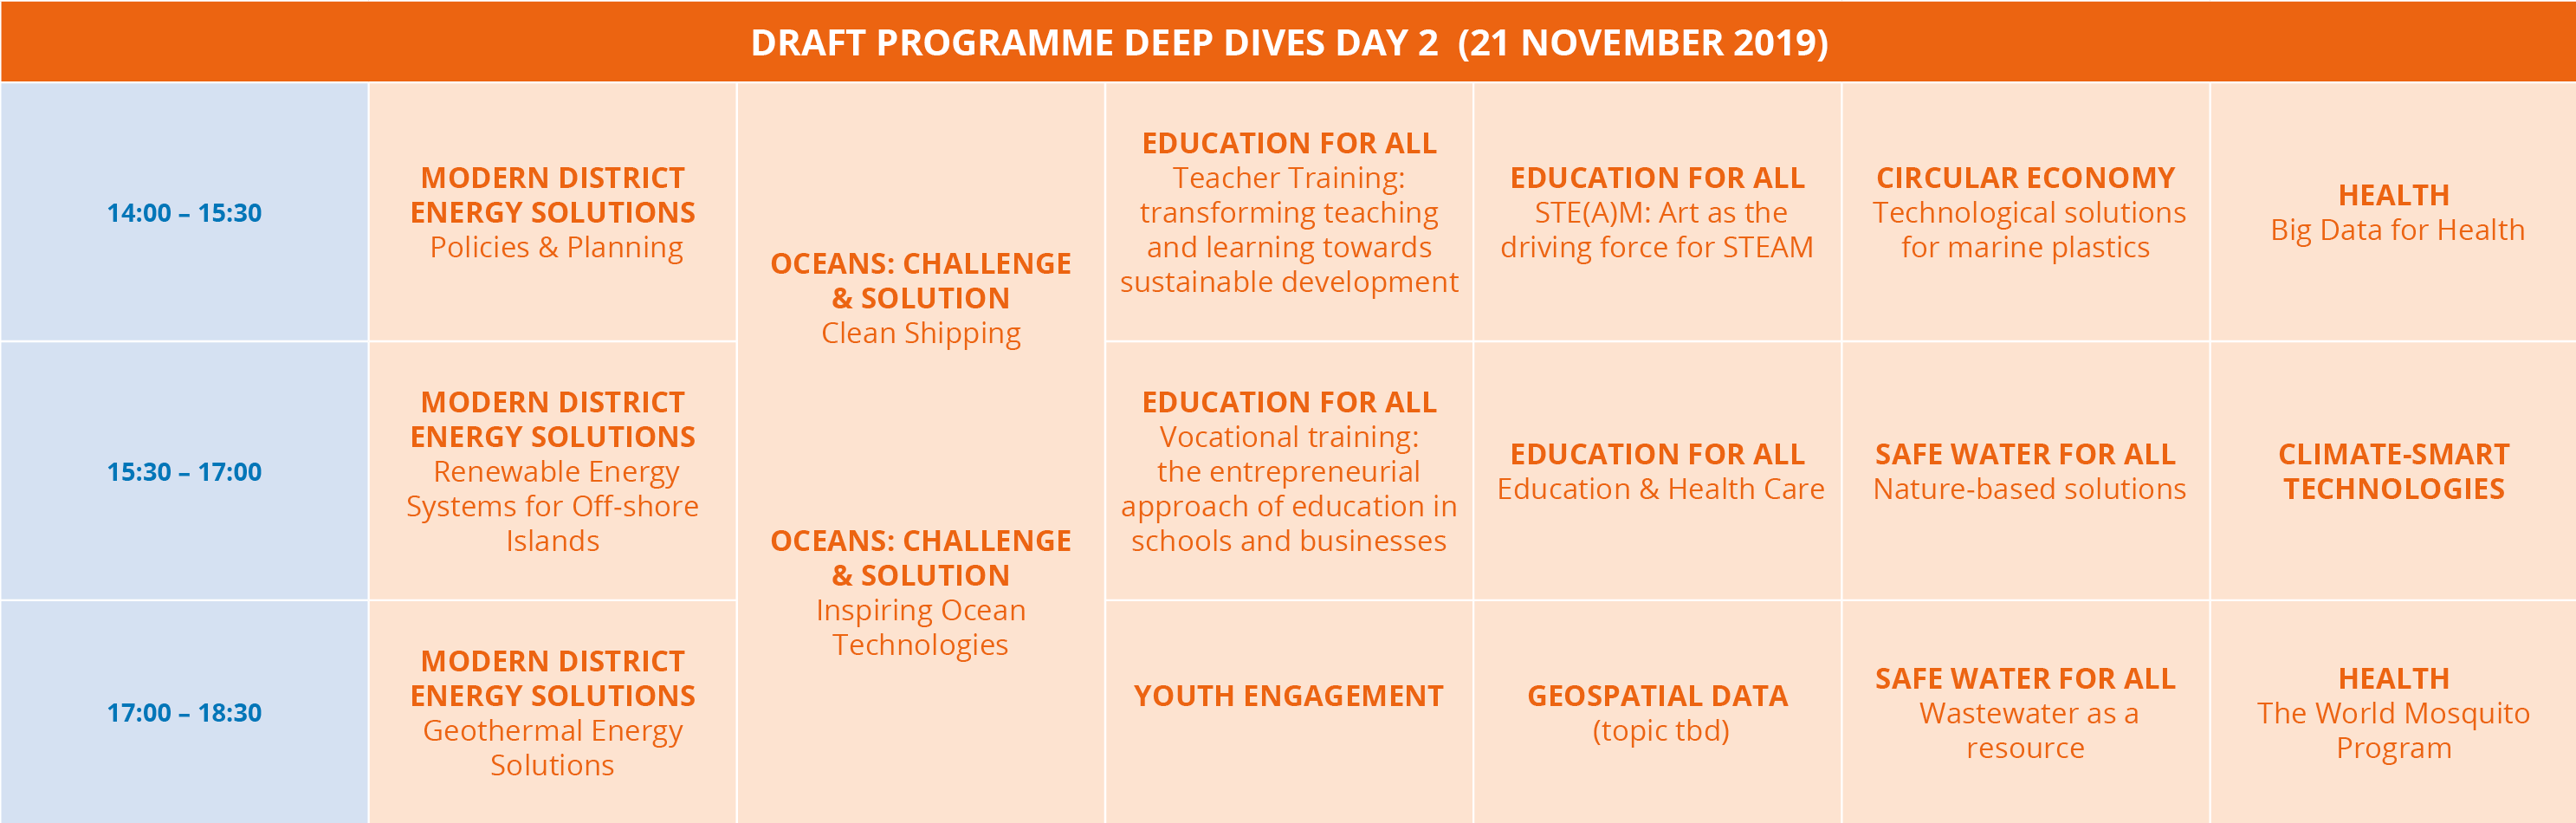 G-STIC 2019 Programme Deep Dive Sessions Day 2